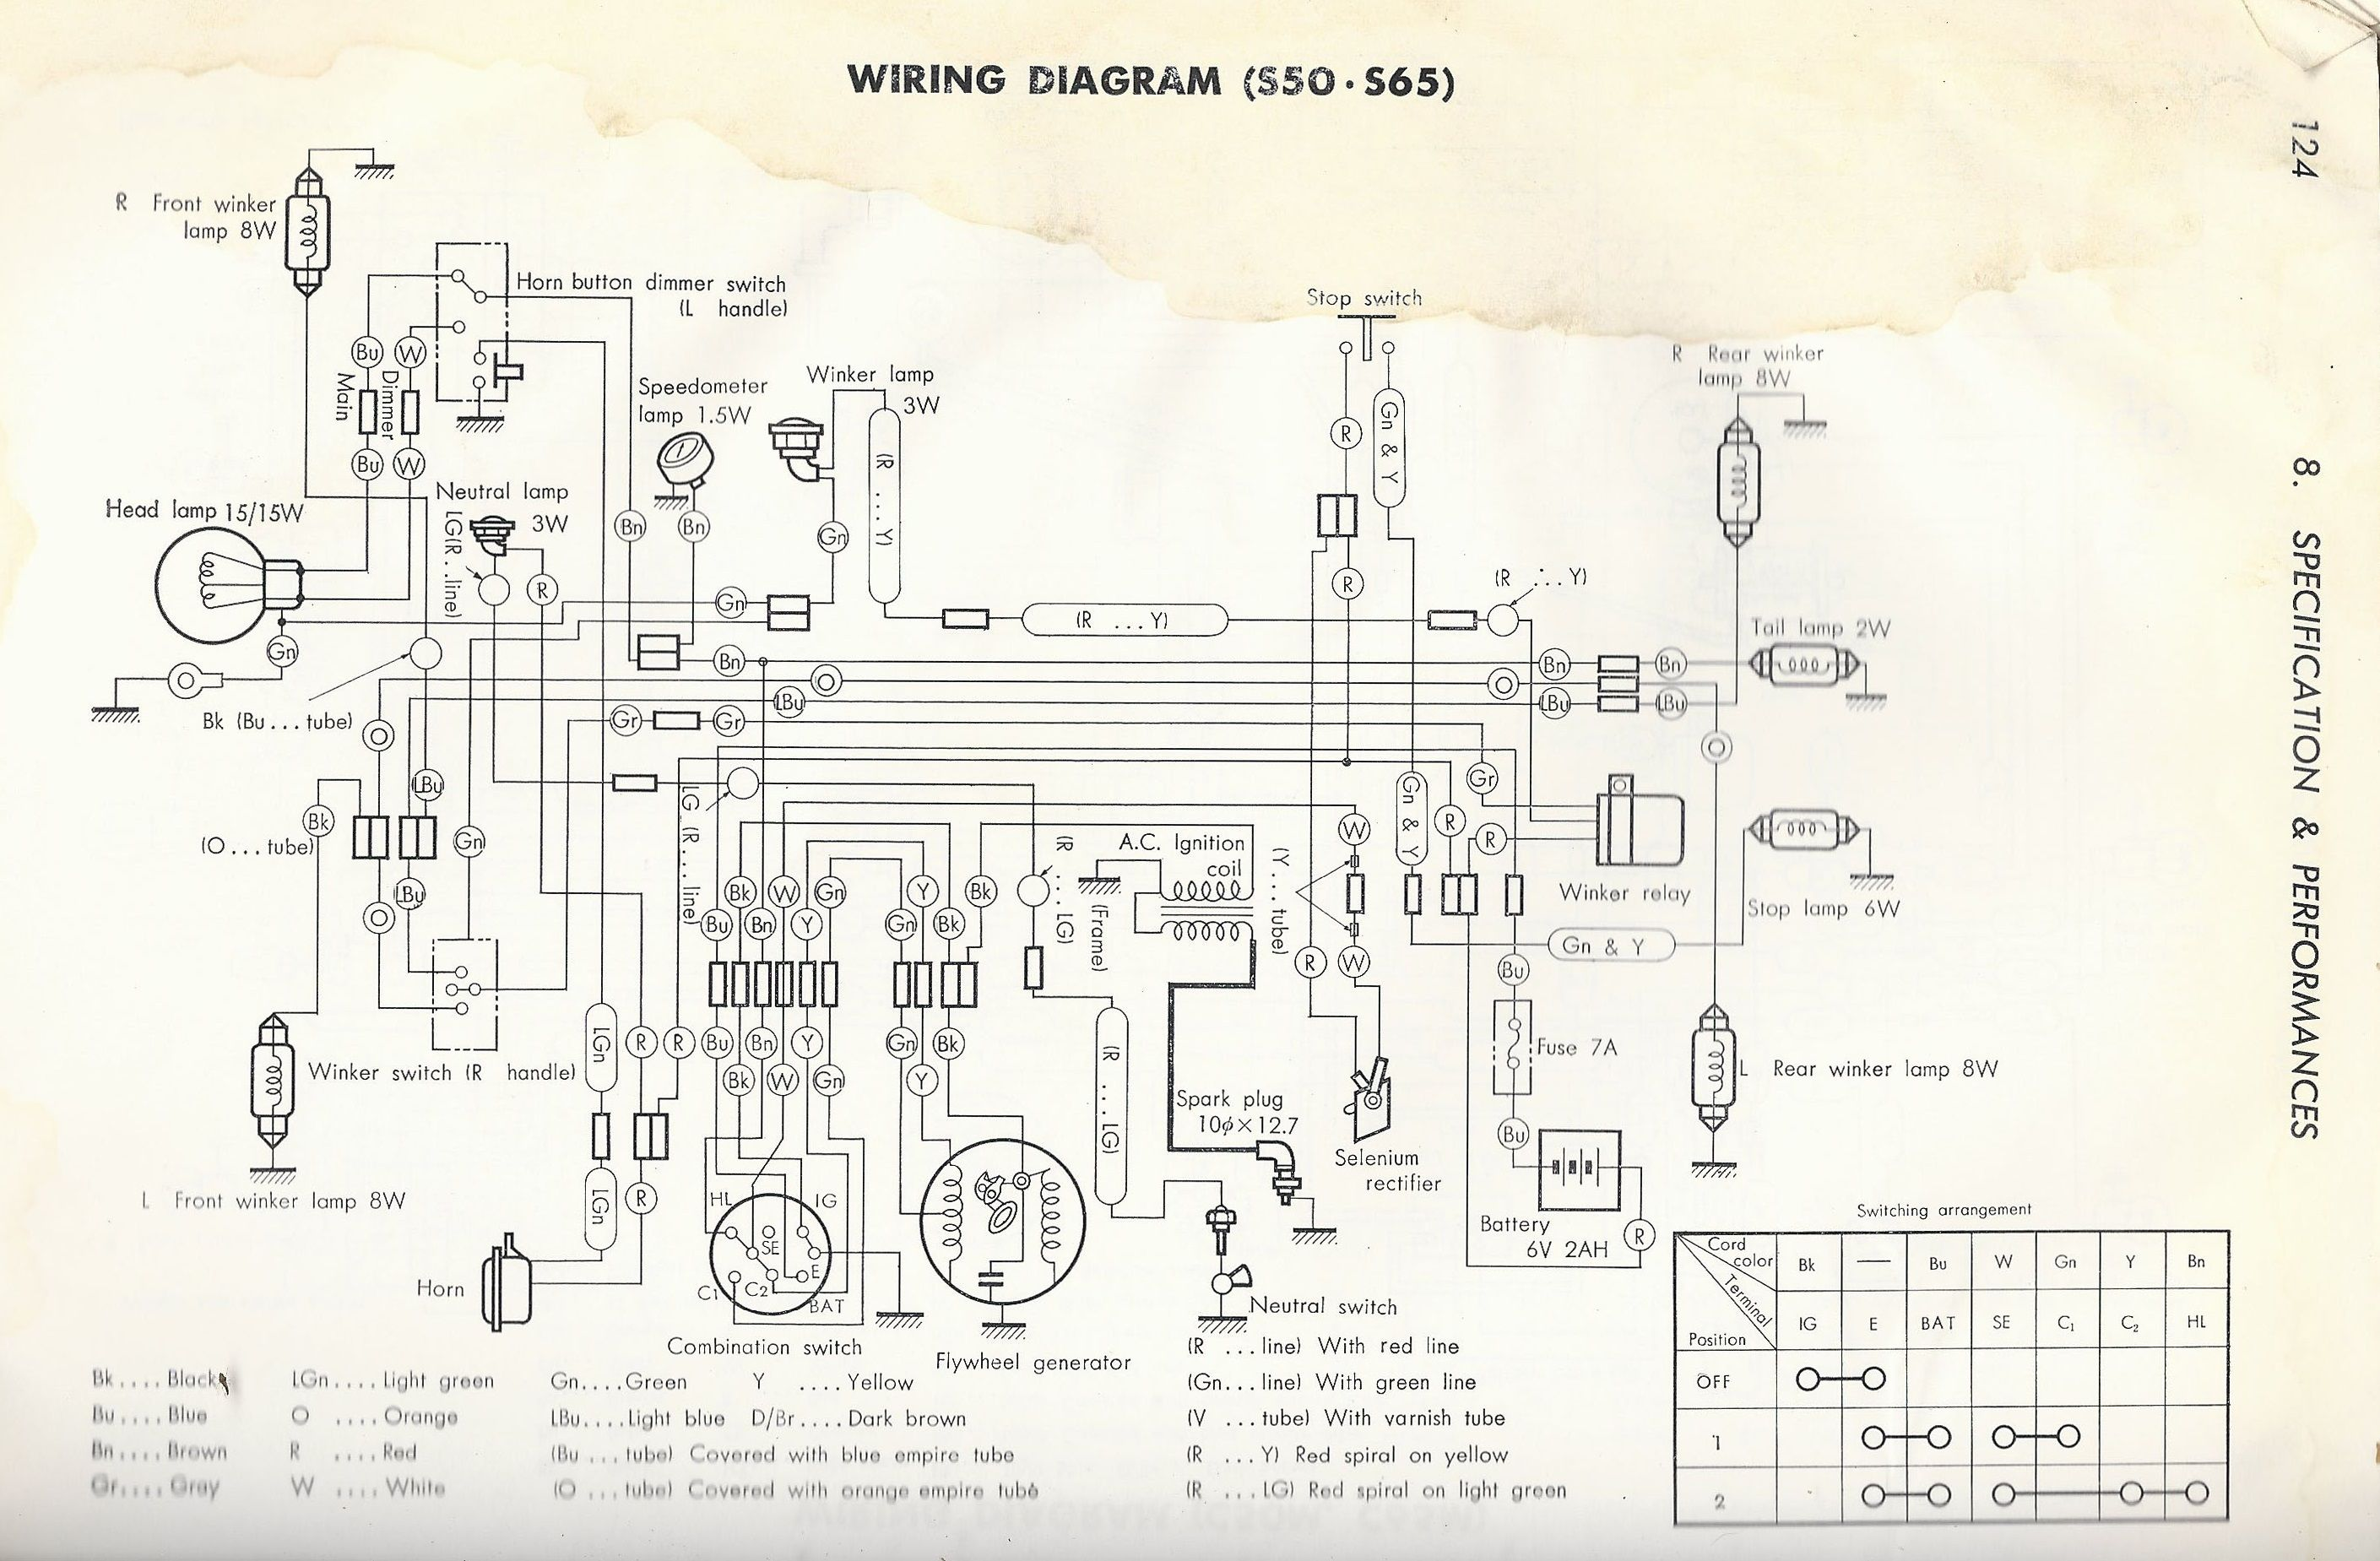 Honda S50 Circuit Wiring Diagram 2 With Images Wire Diagram